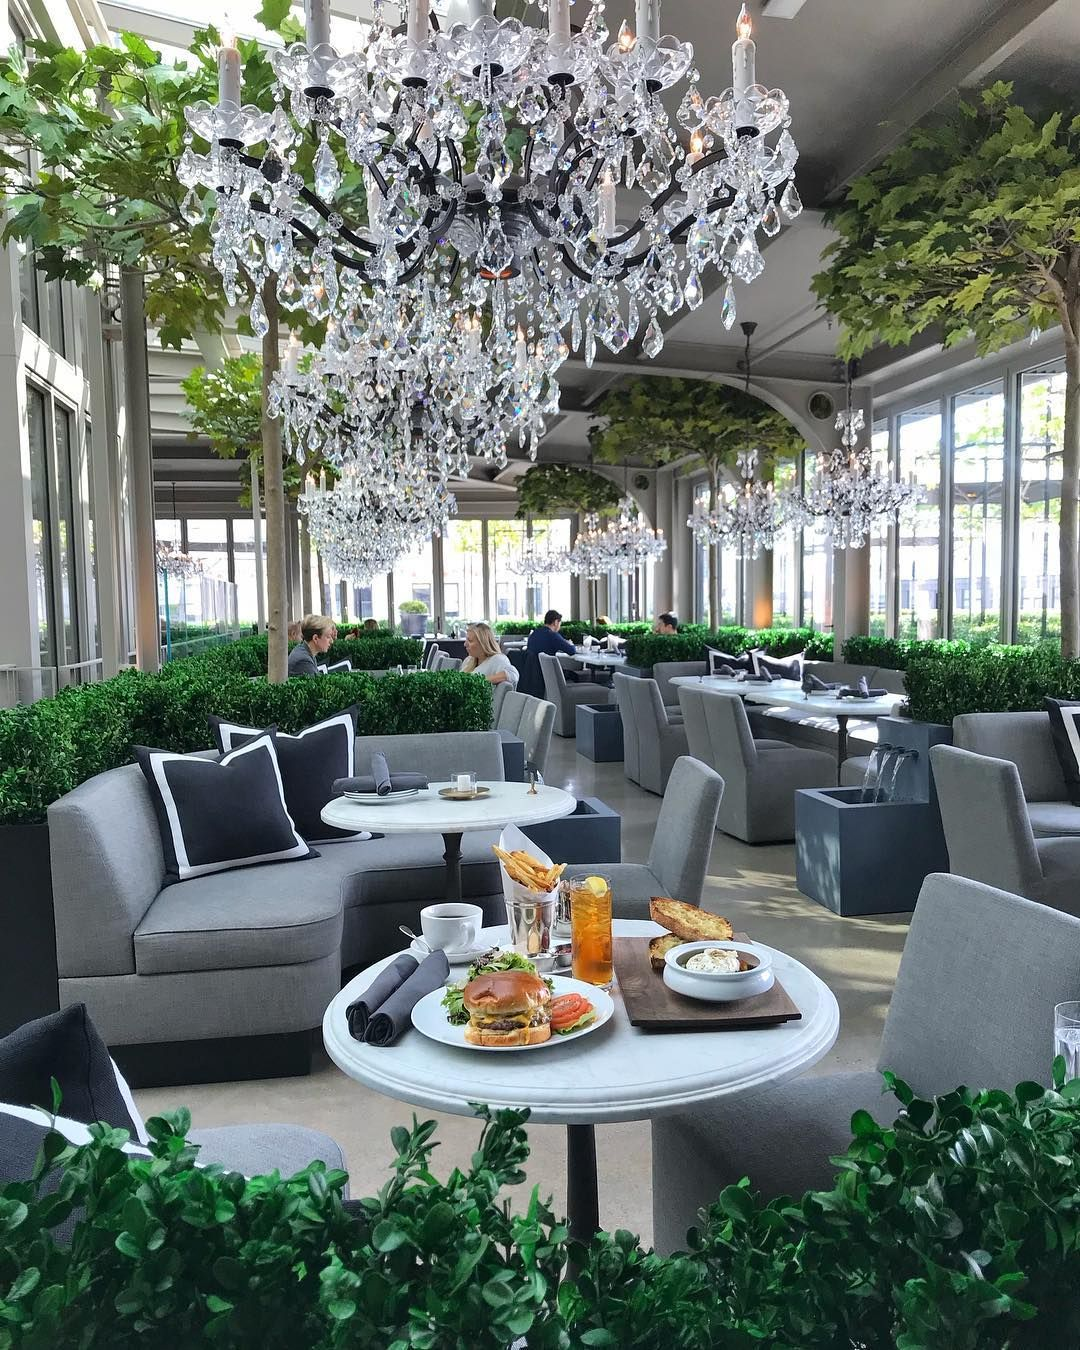 "New York Bucket List on Instagram: ""The stunning NEW rooftop restaurant & terrace at Restoration Hardware - Who wants to go?"